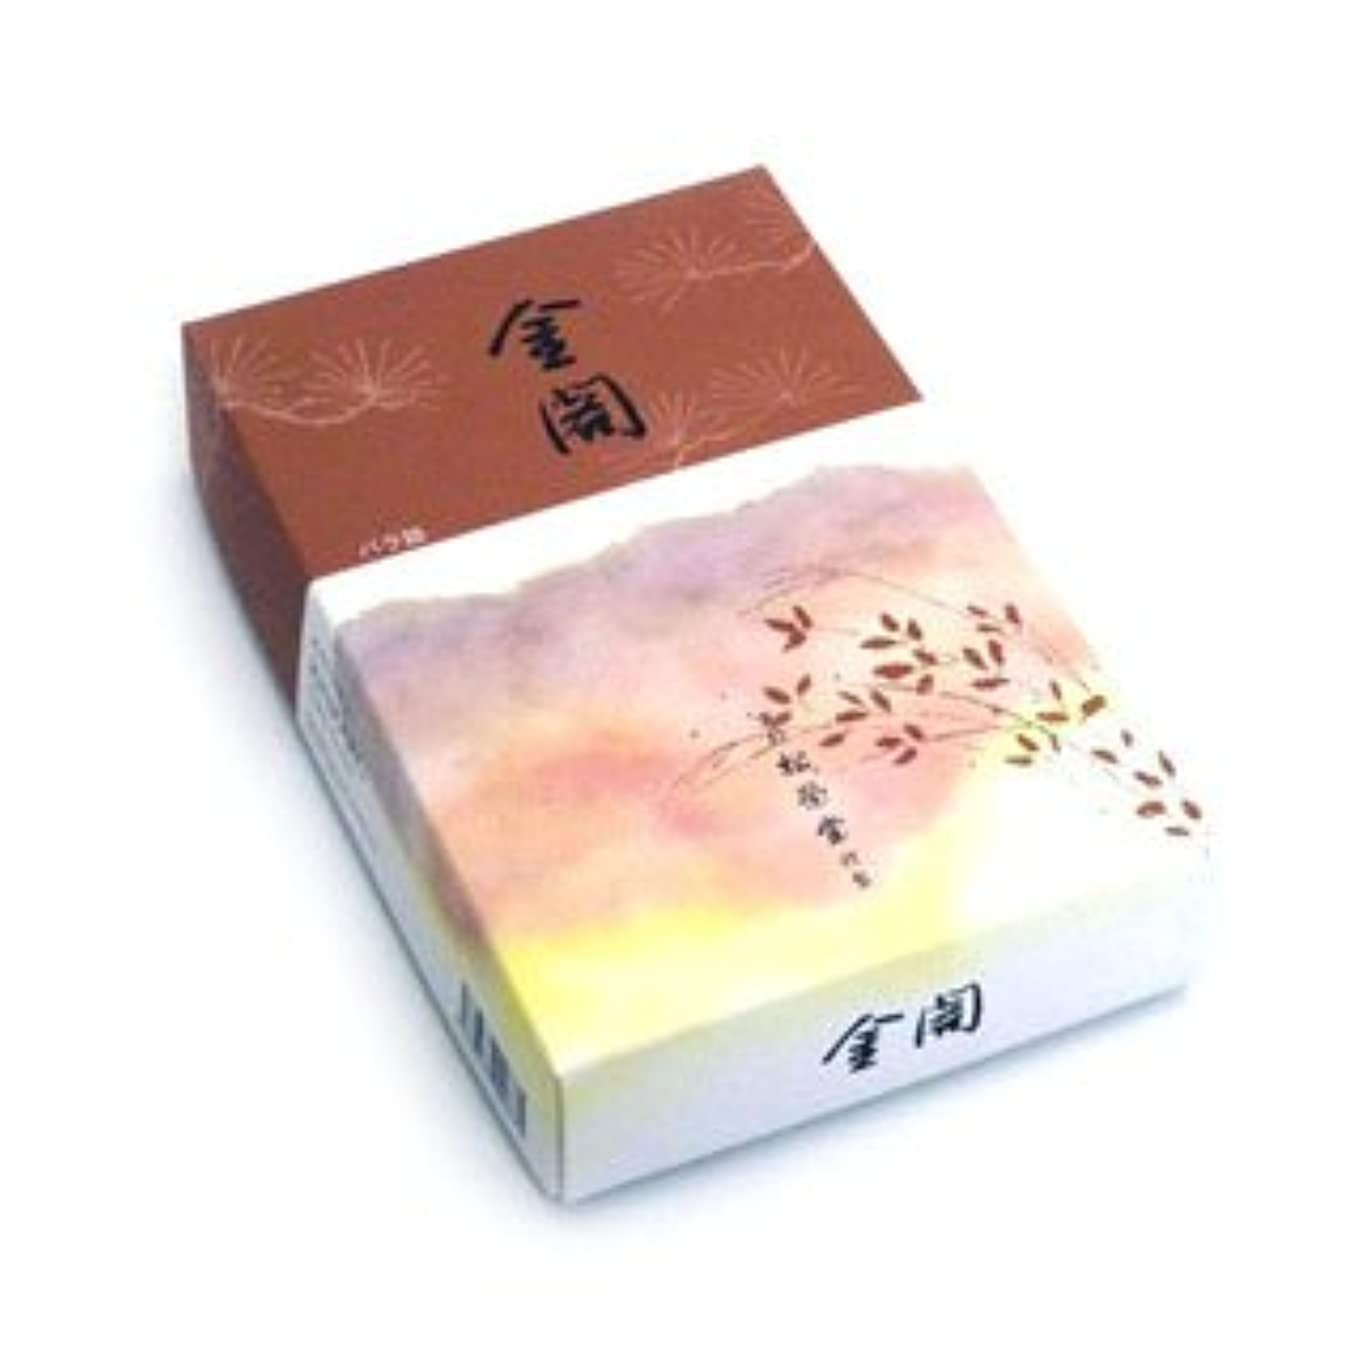 提案するきらめく阻害するShoyeido's Golden Pavilion Incense 450 Sticks - Kin-kaku, New.